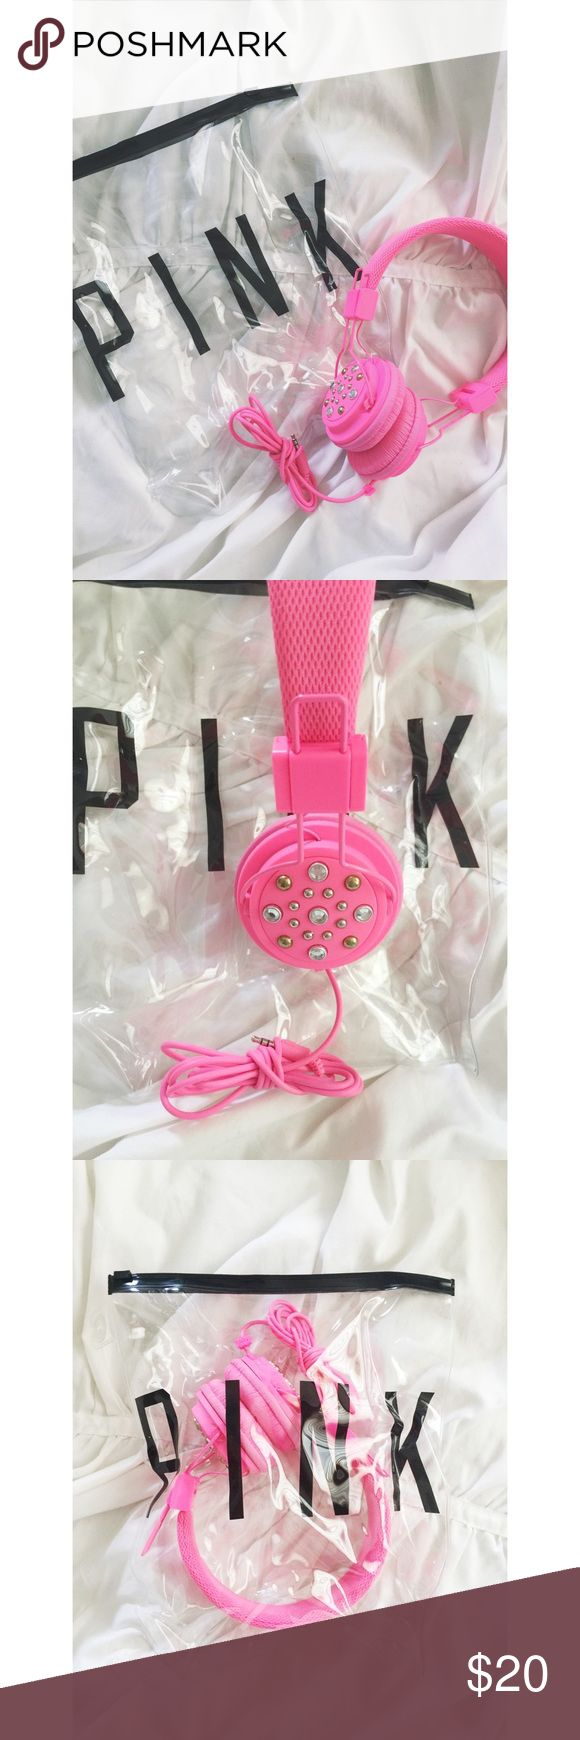 Victoria's Secret PINK Headphones Victoria's Secret PINK Headphones.  Pink Bling head phones.  Used once.  Comes in bag.  Great condition, works great. PINK Victoria's Secret Other